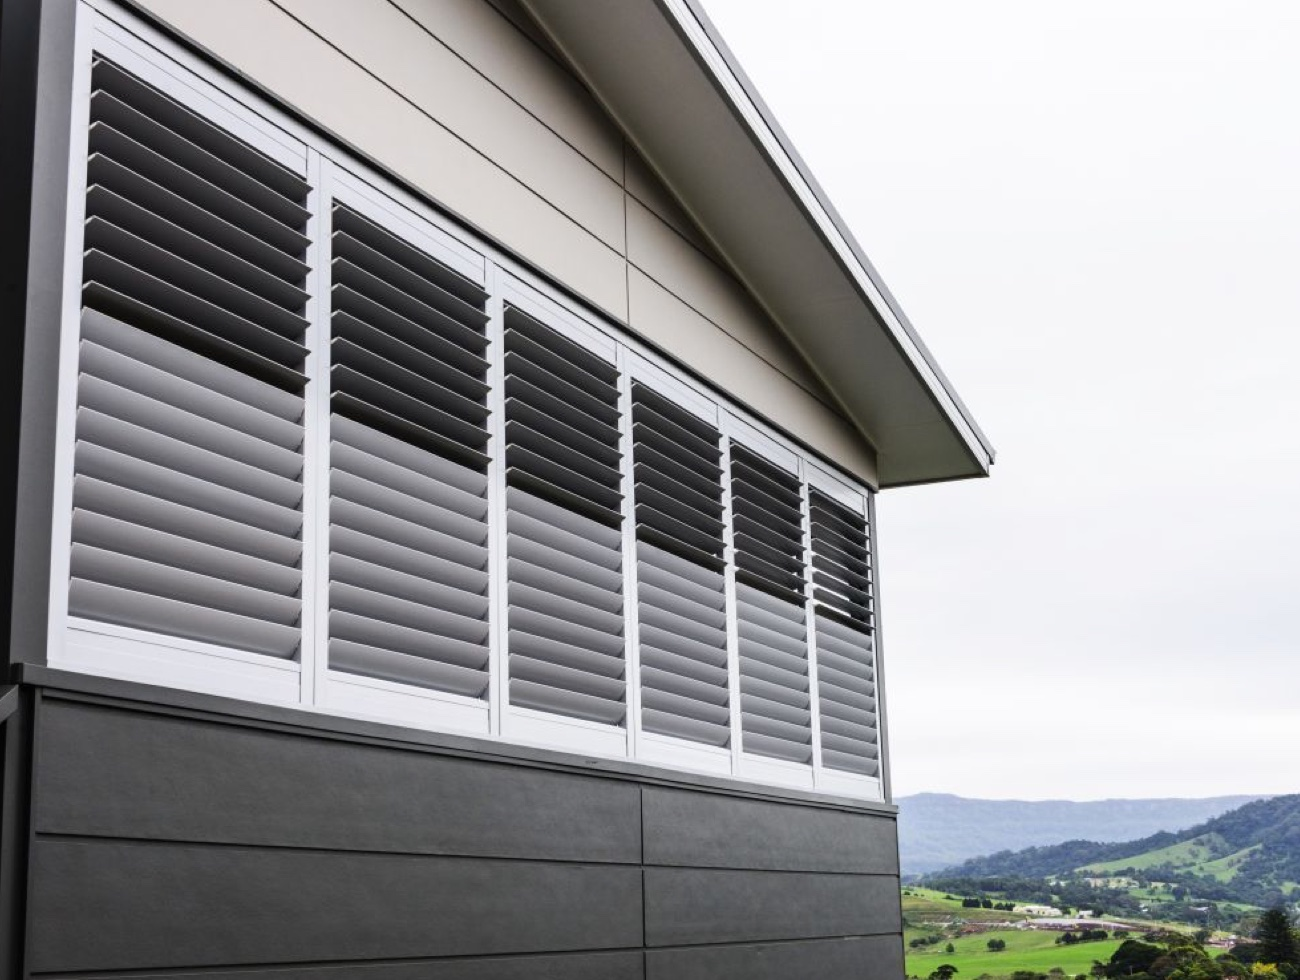 Penrith's leading blinds and shutters